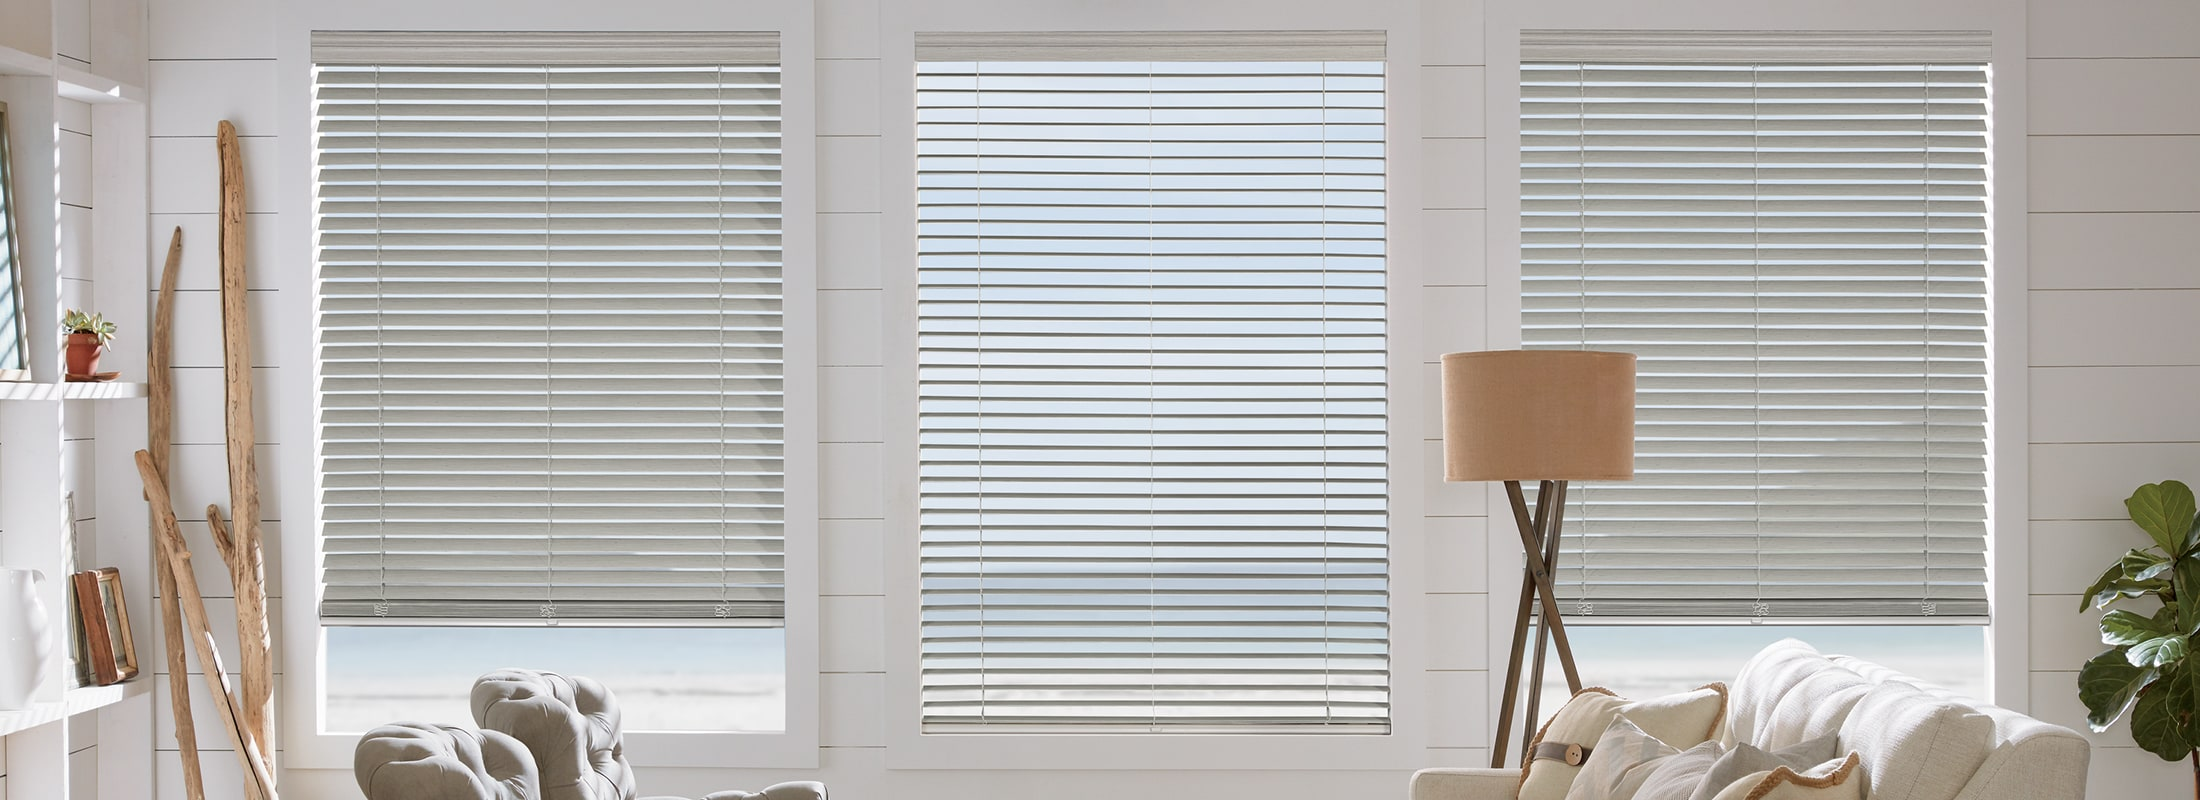 21x62 blinds